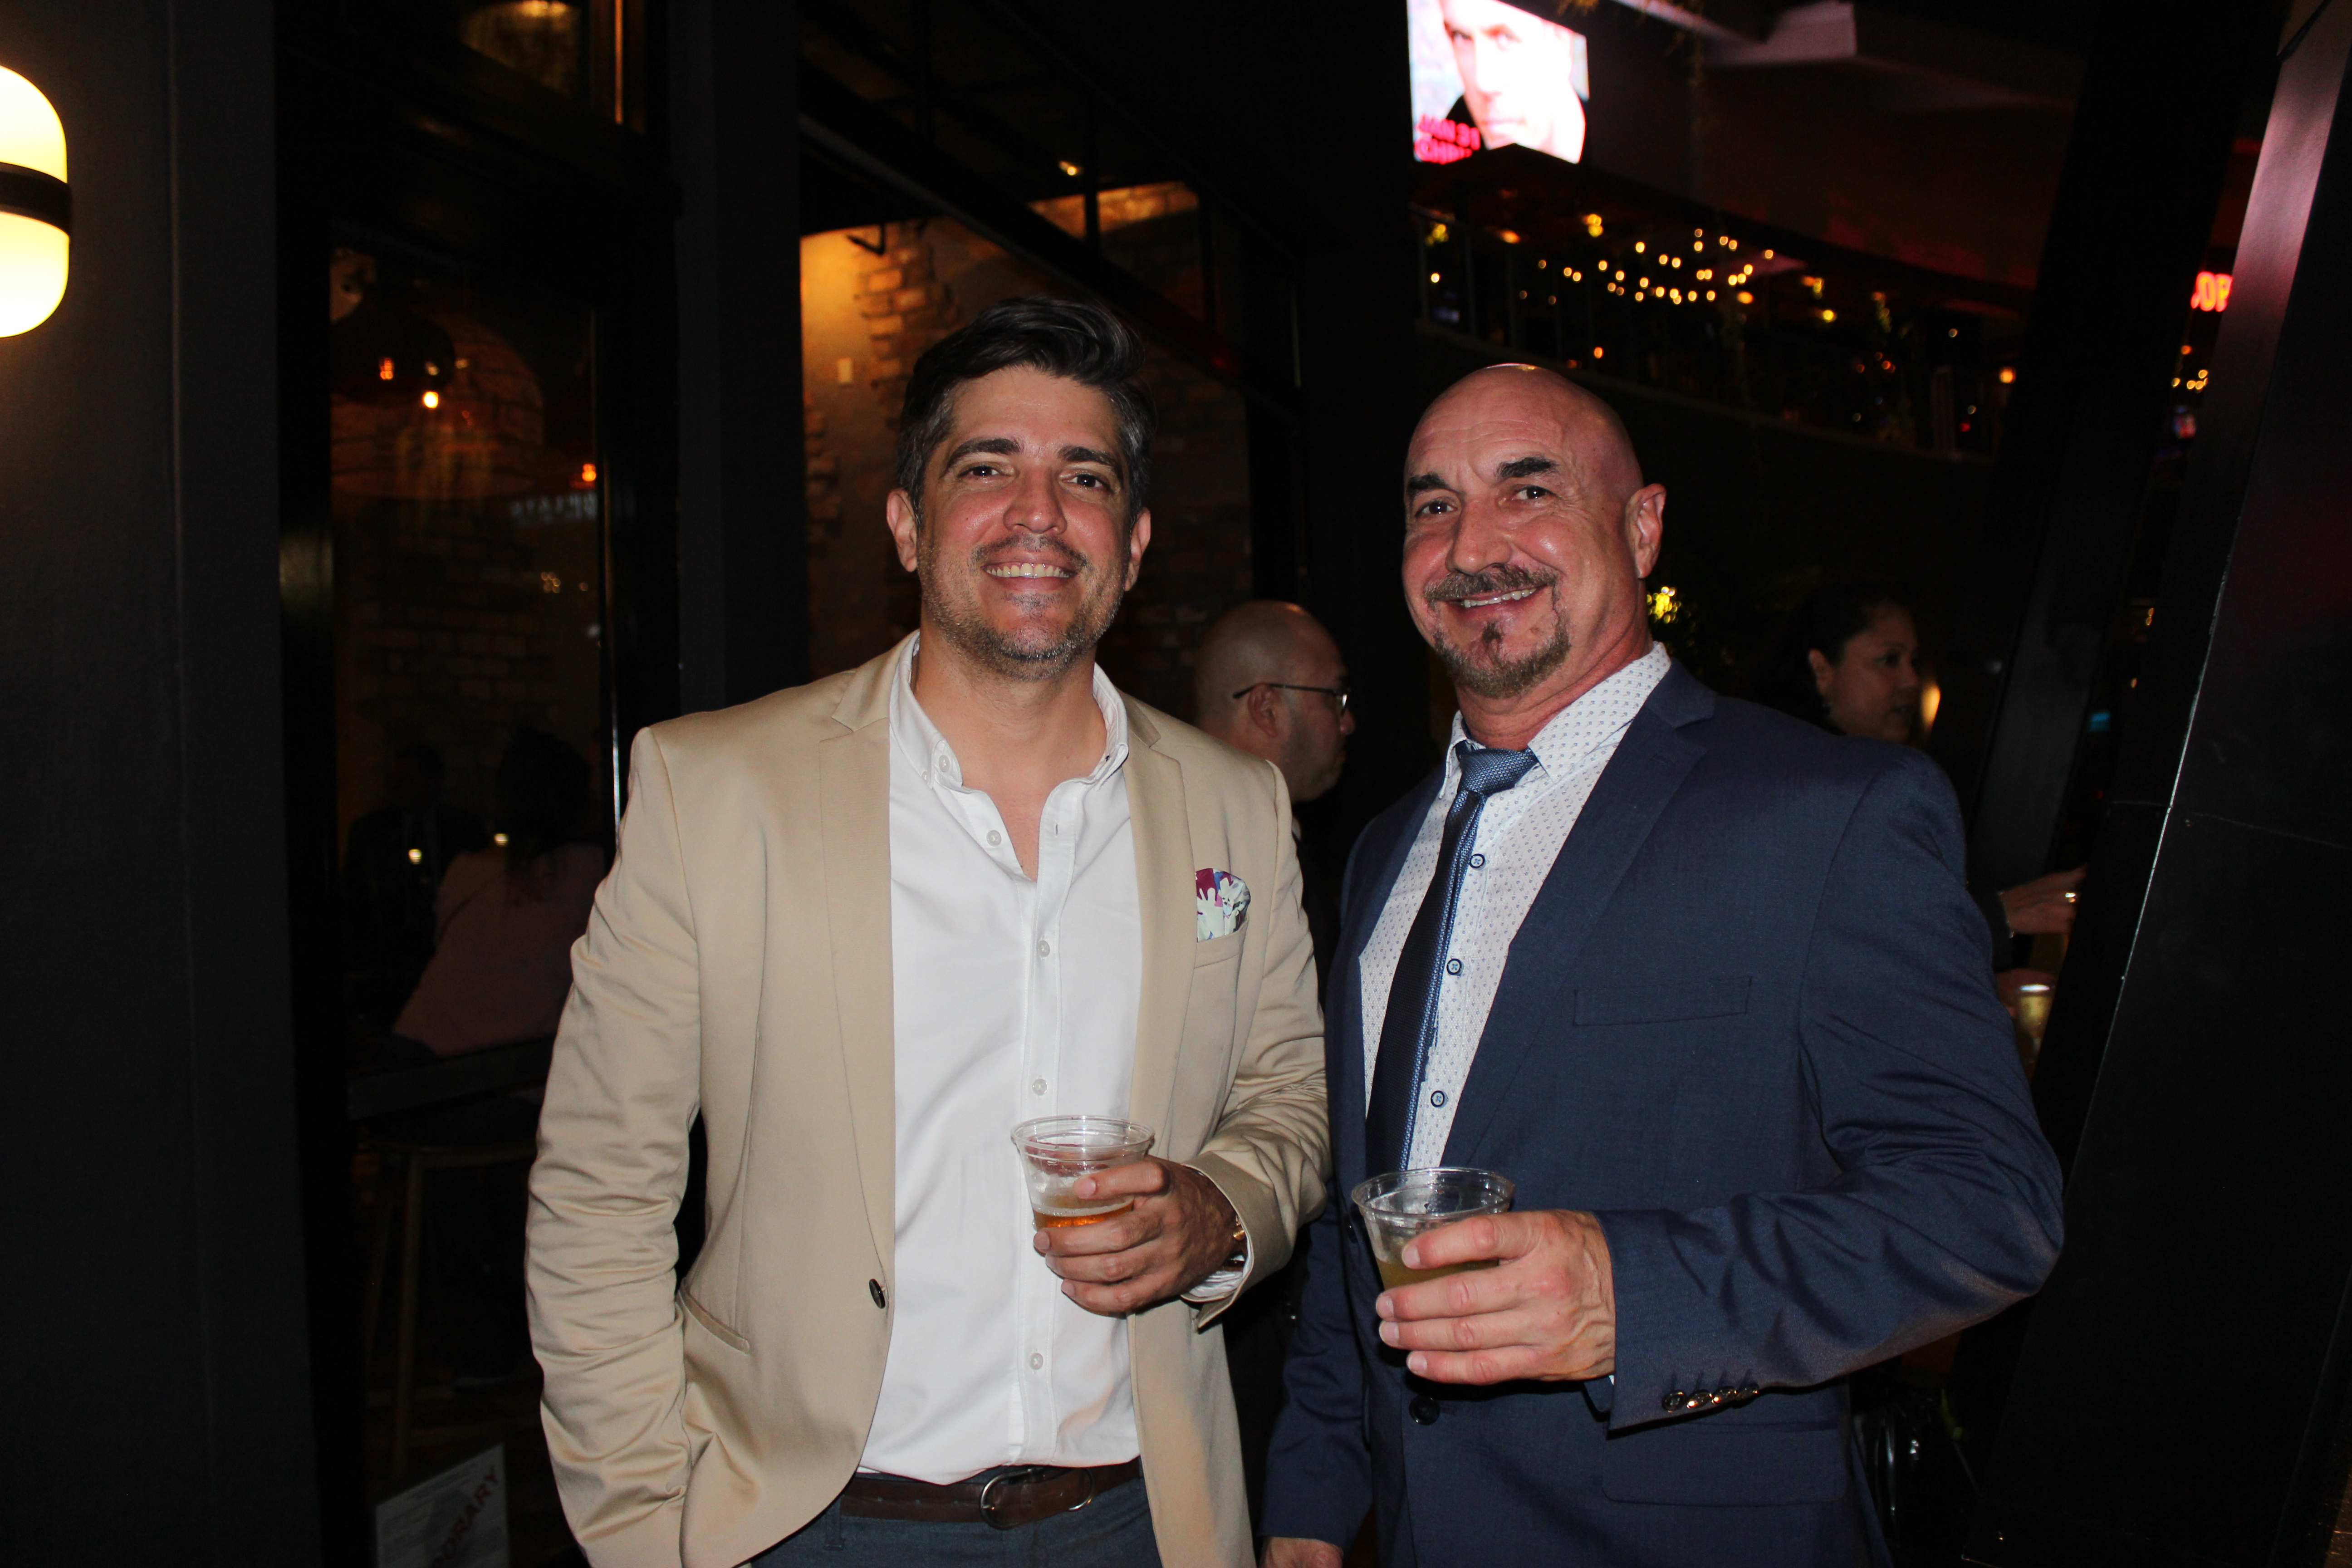 Doral Chamber of Commerce introduces Novecento Grand Opening Event, 2 people taking a photo together.